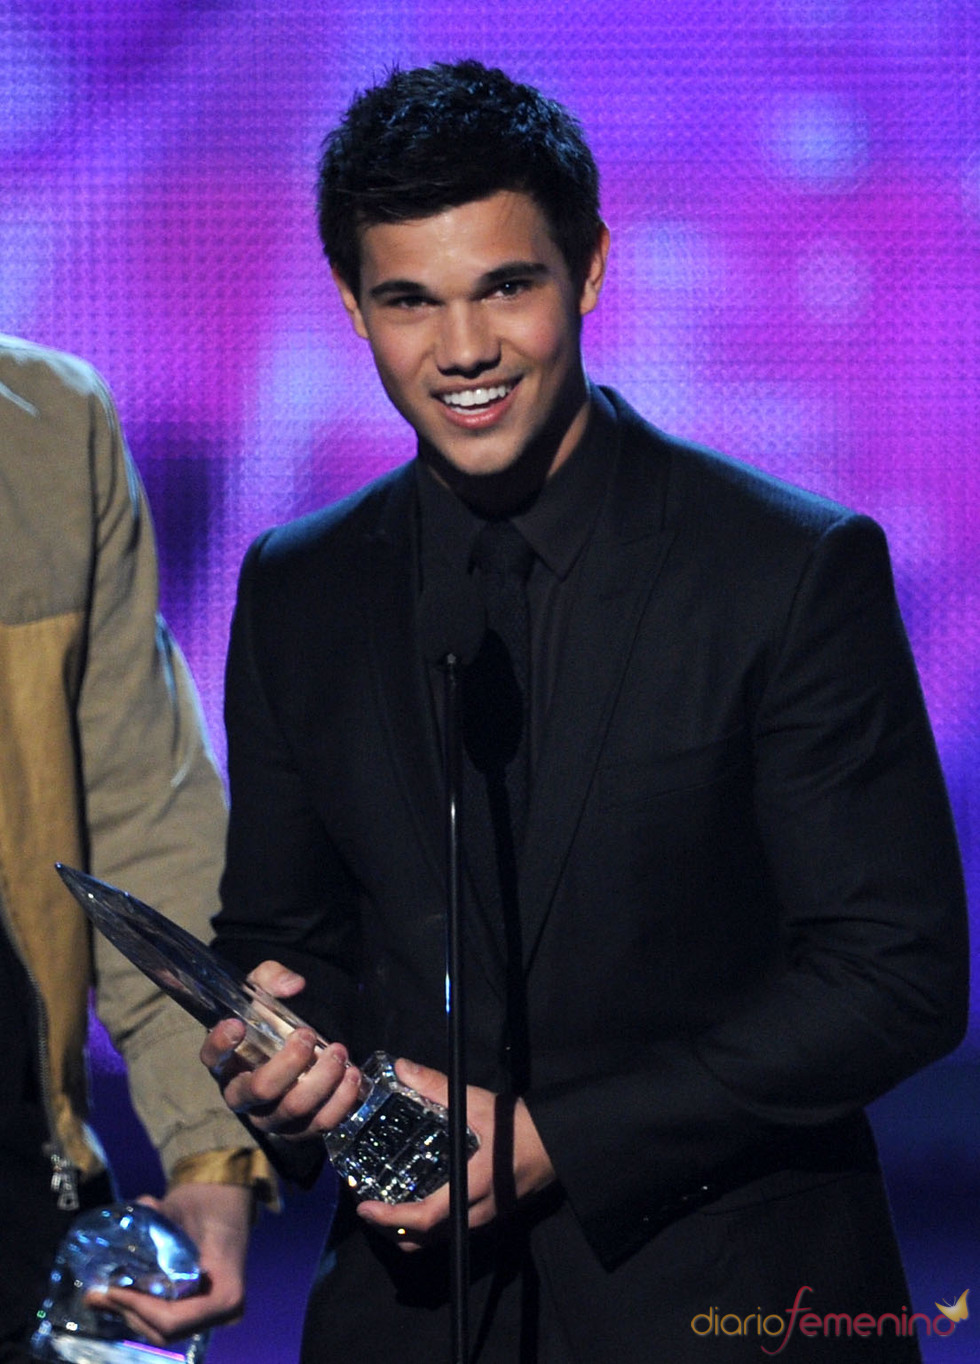 Taylor Lautner en el People's Choice Awards 2011